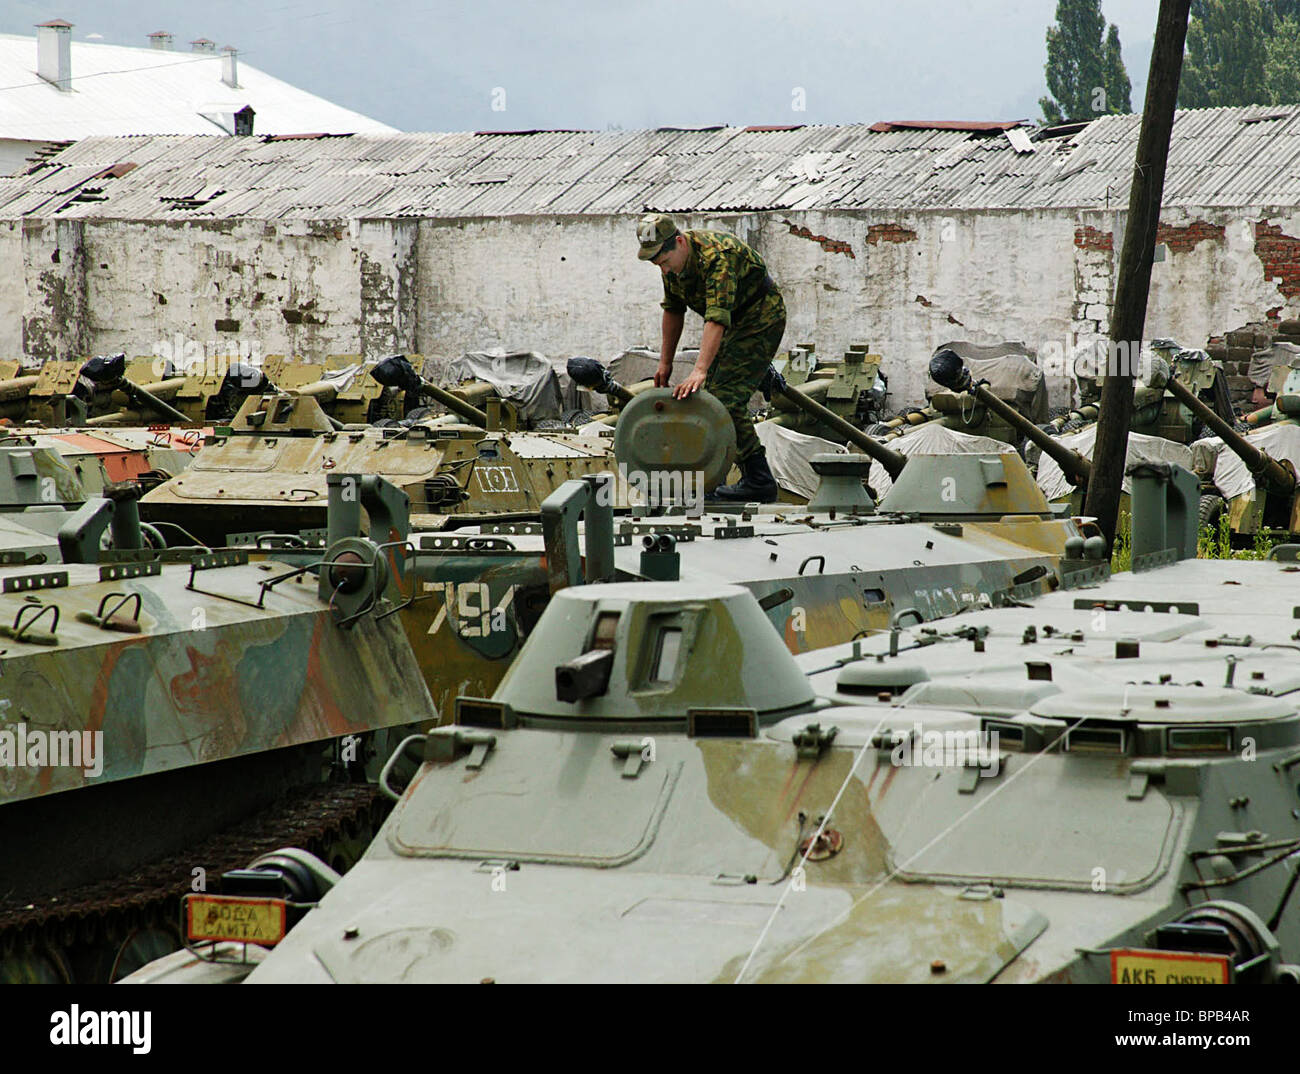 Russian military bases preparing for withdrawal from georgia stock russian military bases preparing for withdrawal from georgia publicscrutiny Gallery